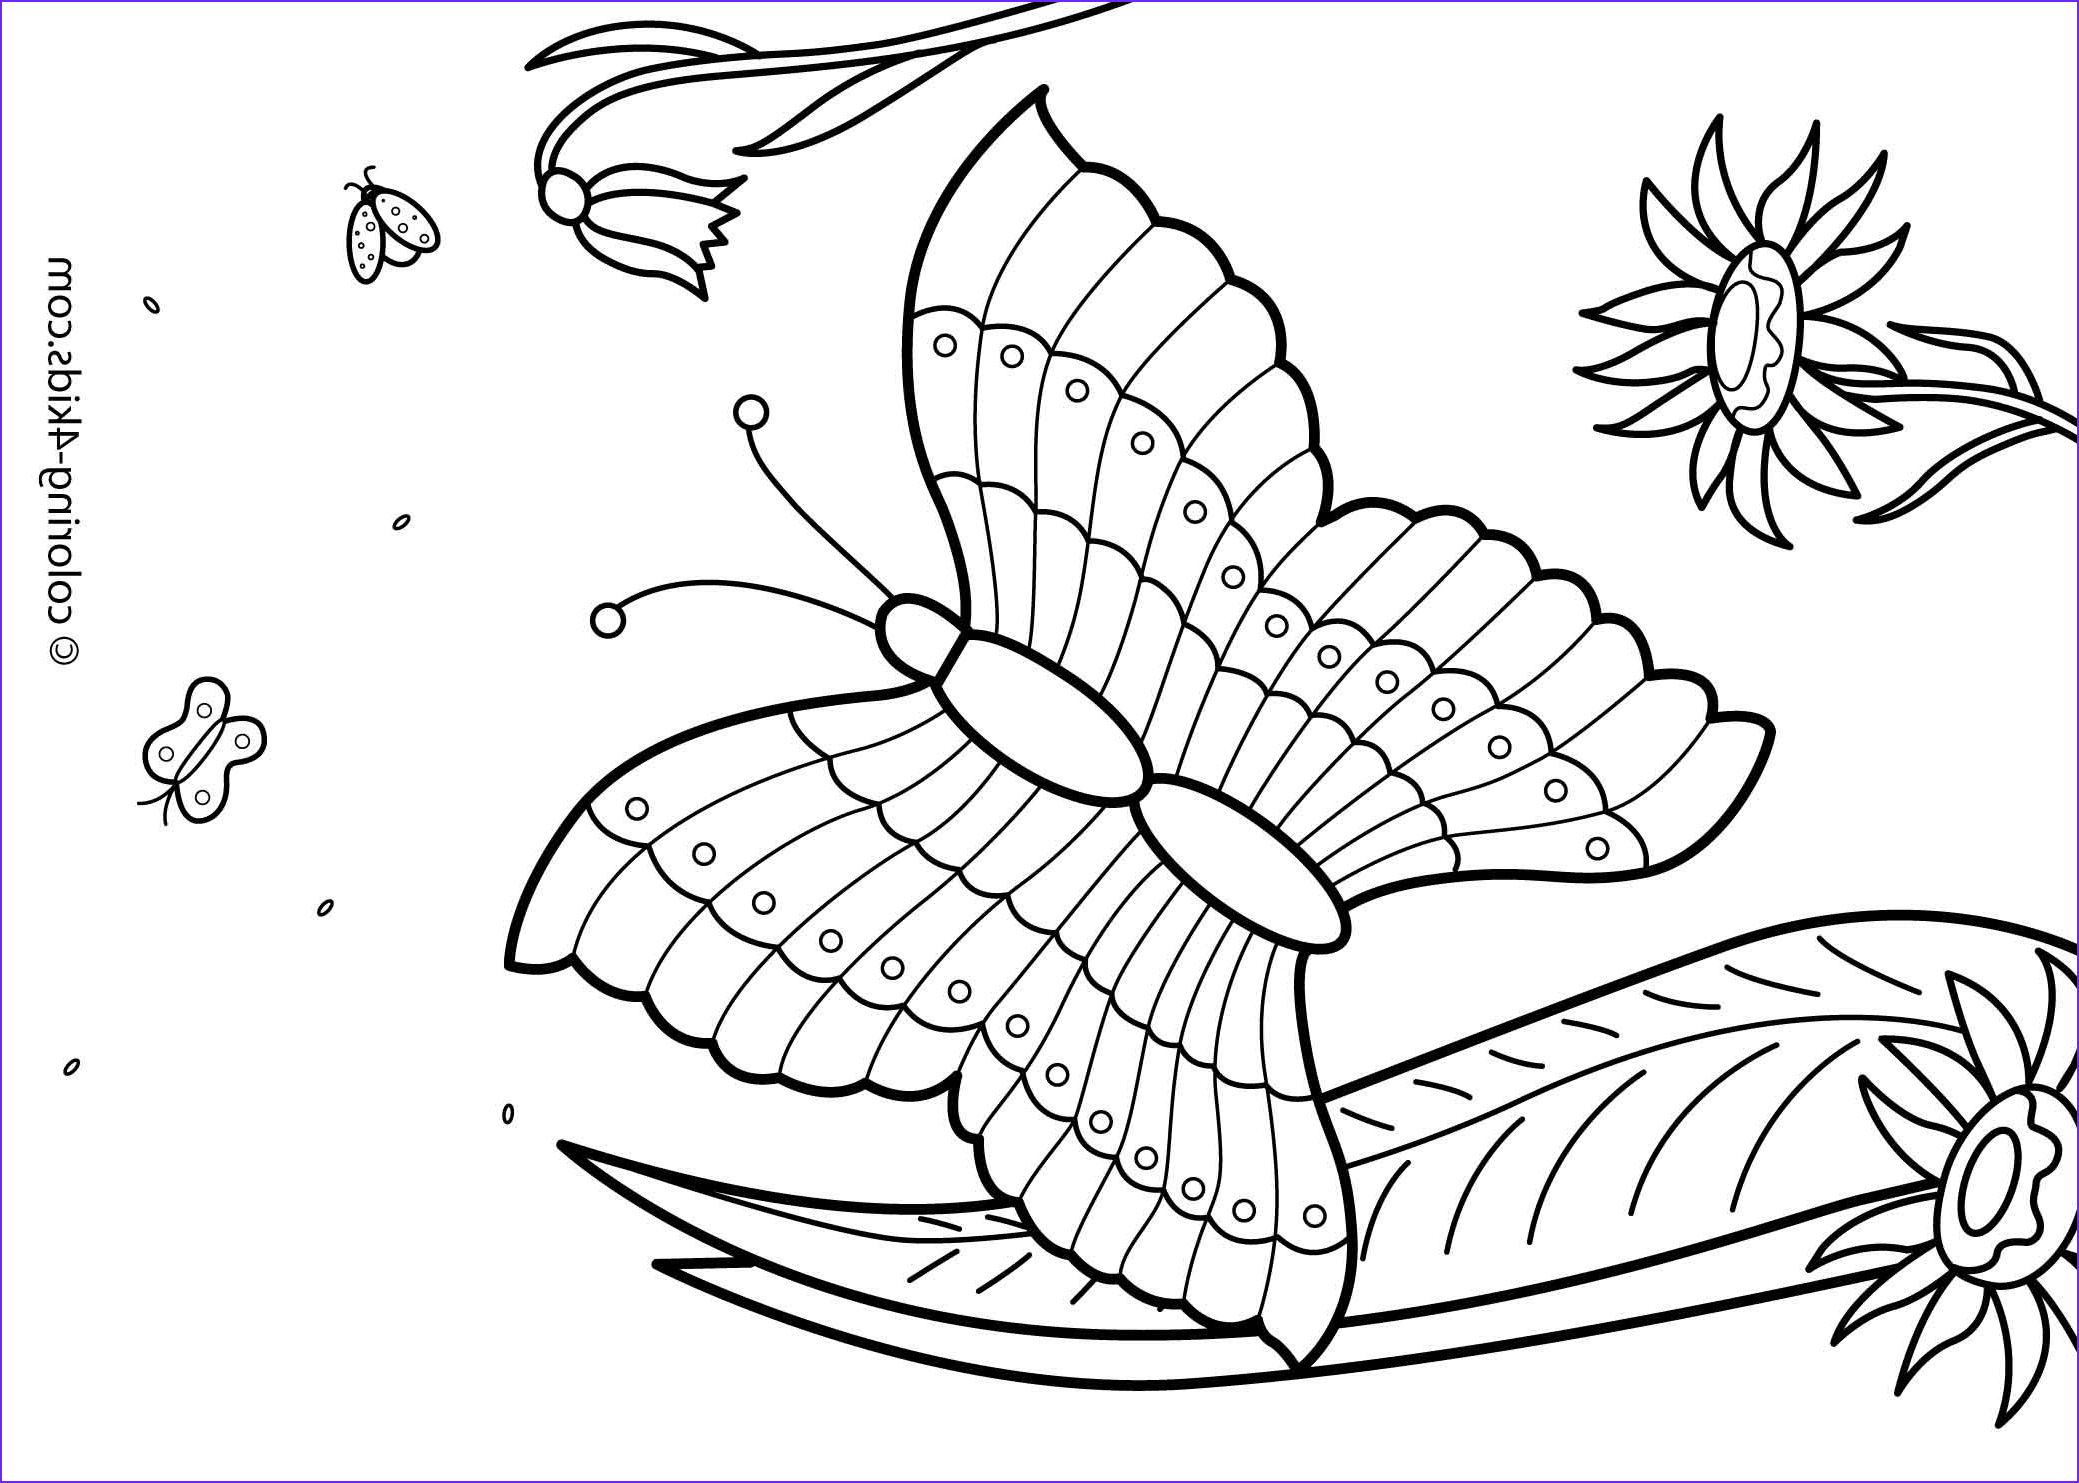 Free Summer Coloring Pages New Images 27 Summer Season Coloring Pages Part 2